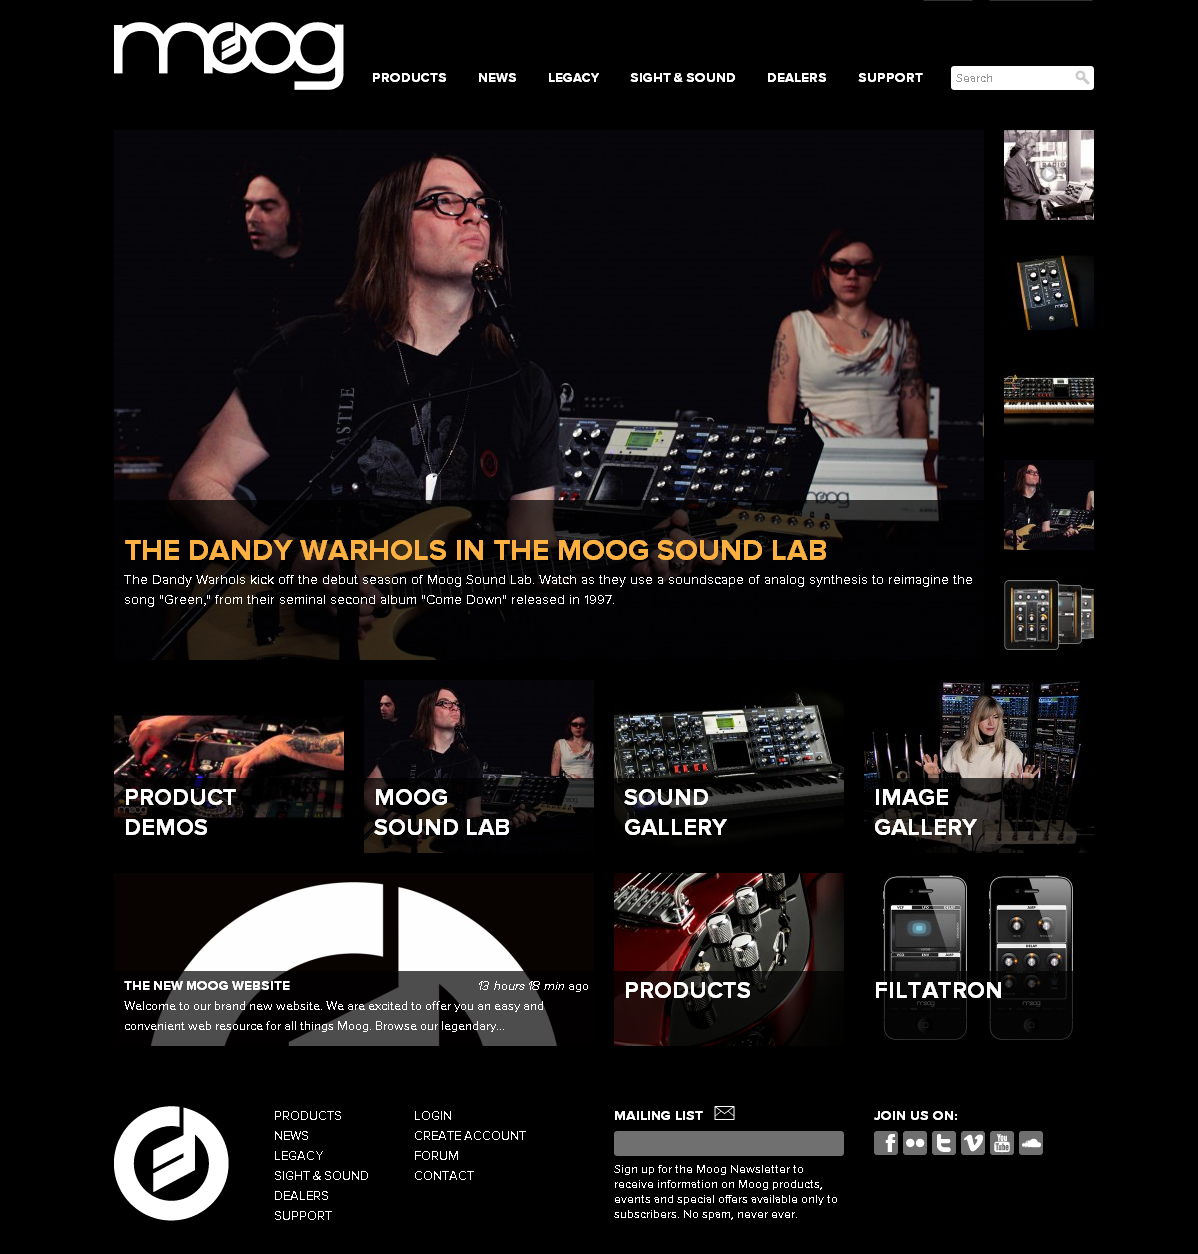 Moog website